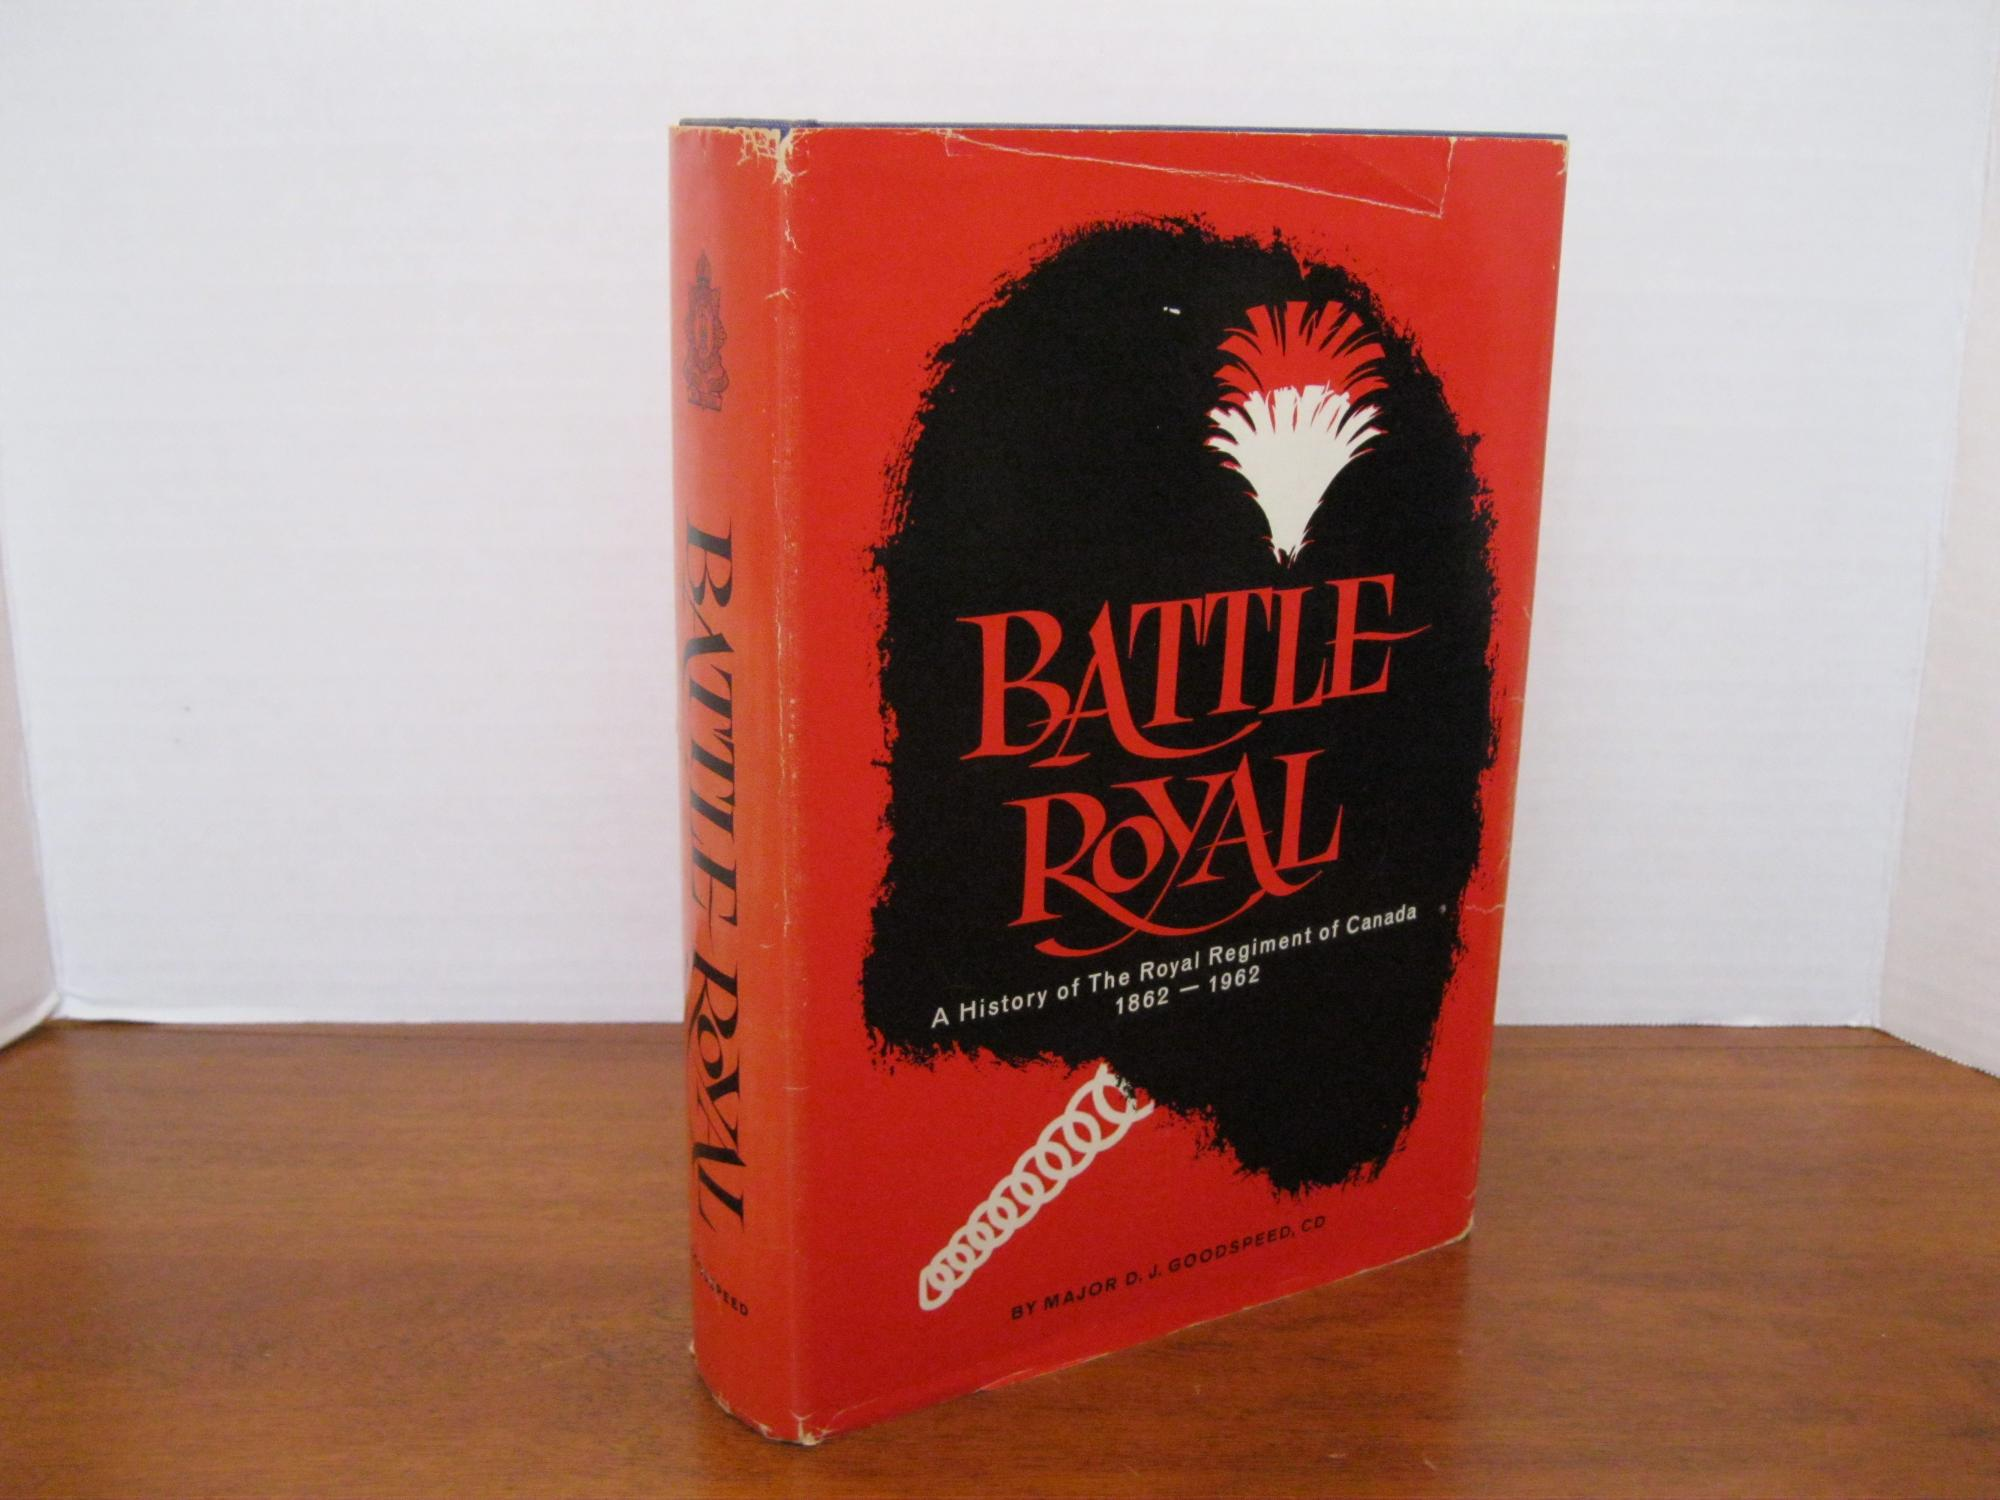 BATTLE_ROYAL_A_HISTORY_OF_THE_ROYAL_REGIMENT_OF_CANADA_1862-1962_GOODSPEED,_Maj._D.J._[Very_Good]_[Hardcover]